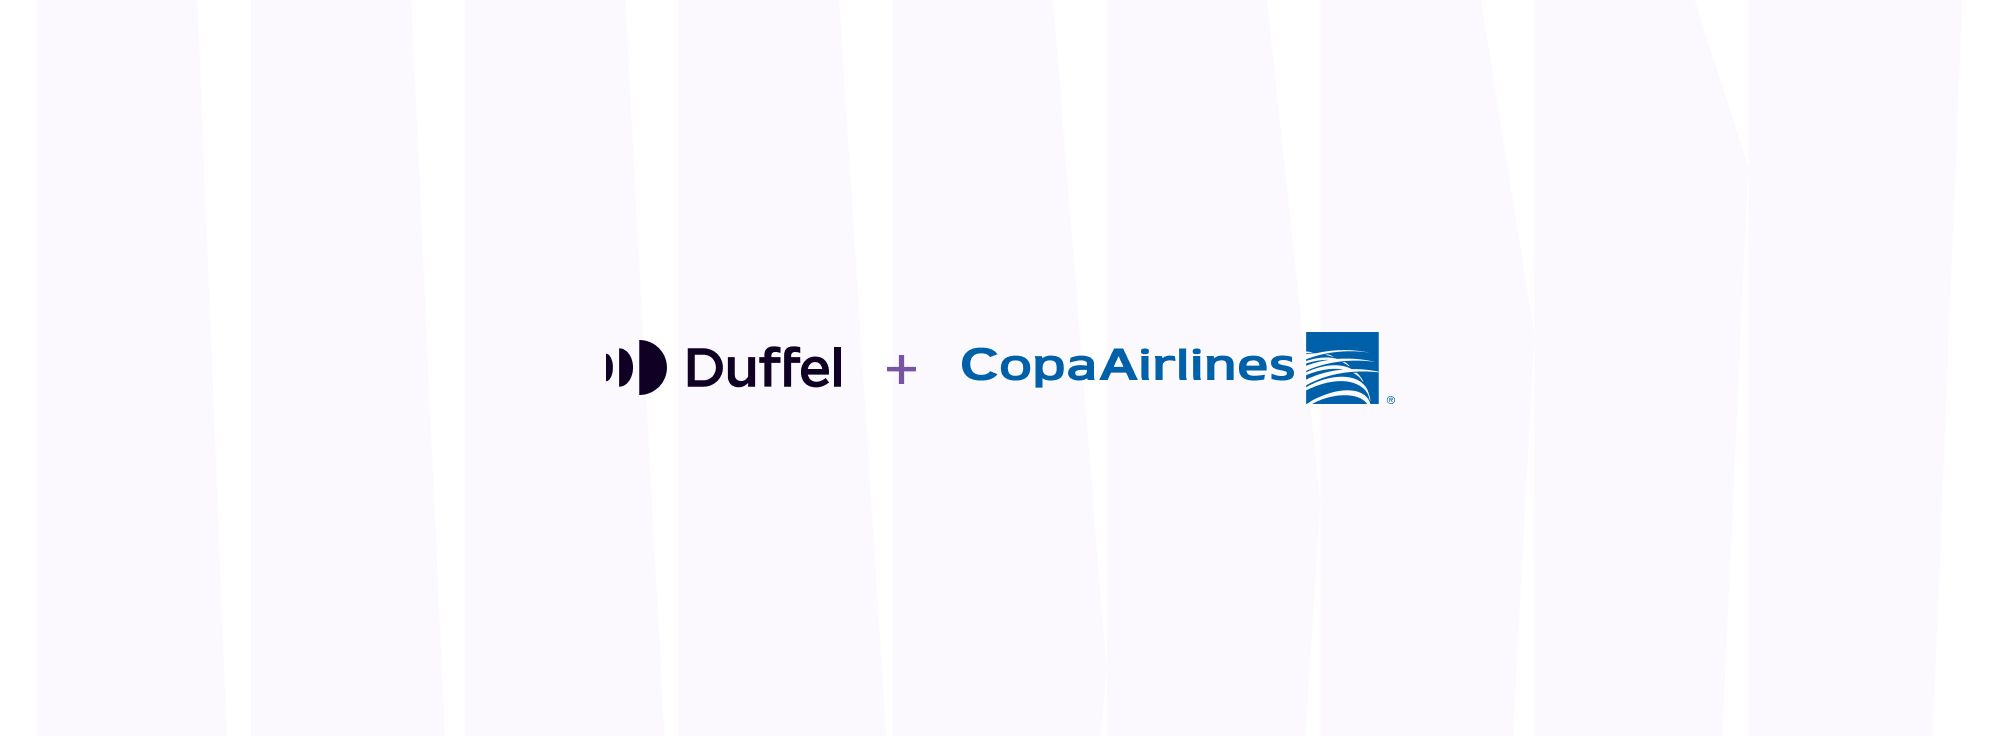 Duffel First Aggregator To Go Live With Copa Airlines